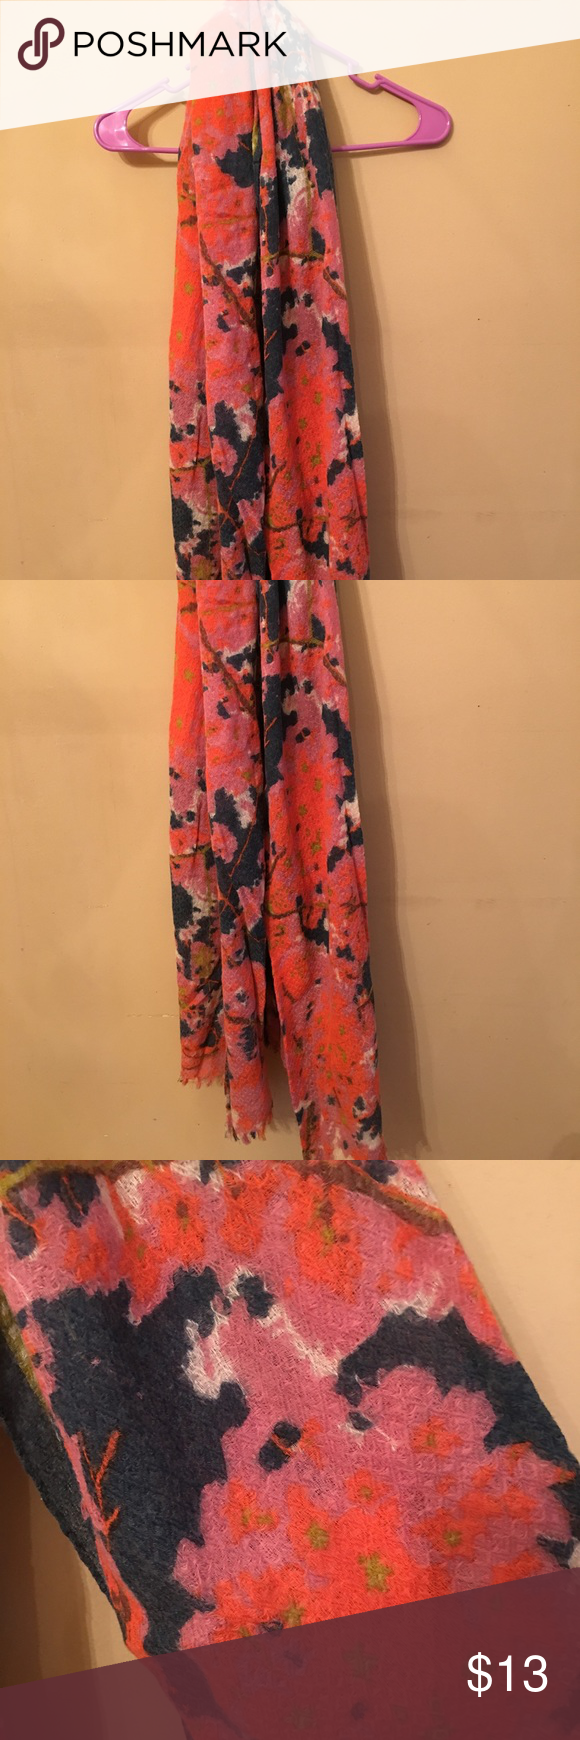 """J Jill Wool Blend Scarf Beautiful Colors This scarf is in great condition. It measures 75"""" from one end to the other. Would go great with any outfit! J. Jill Accessories Scarves & Wraps"""